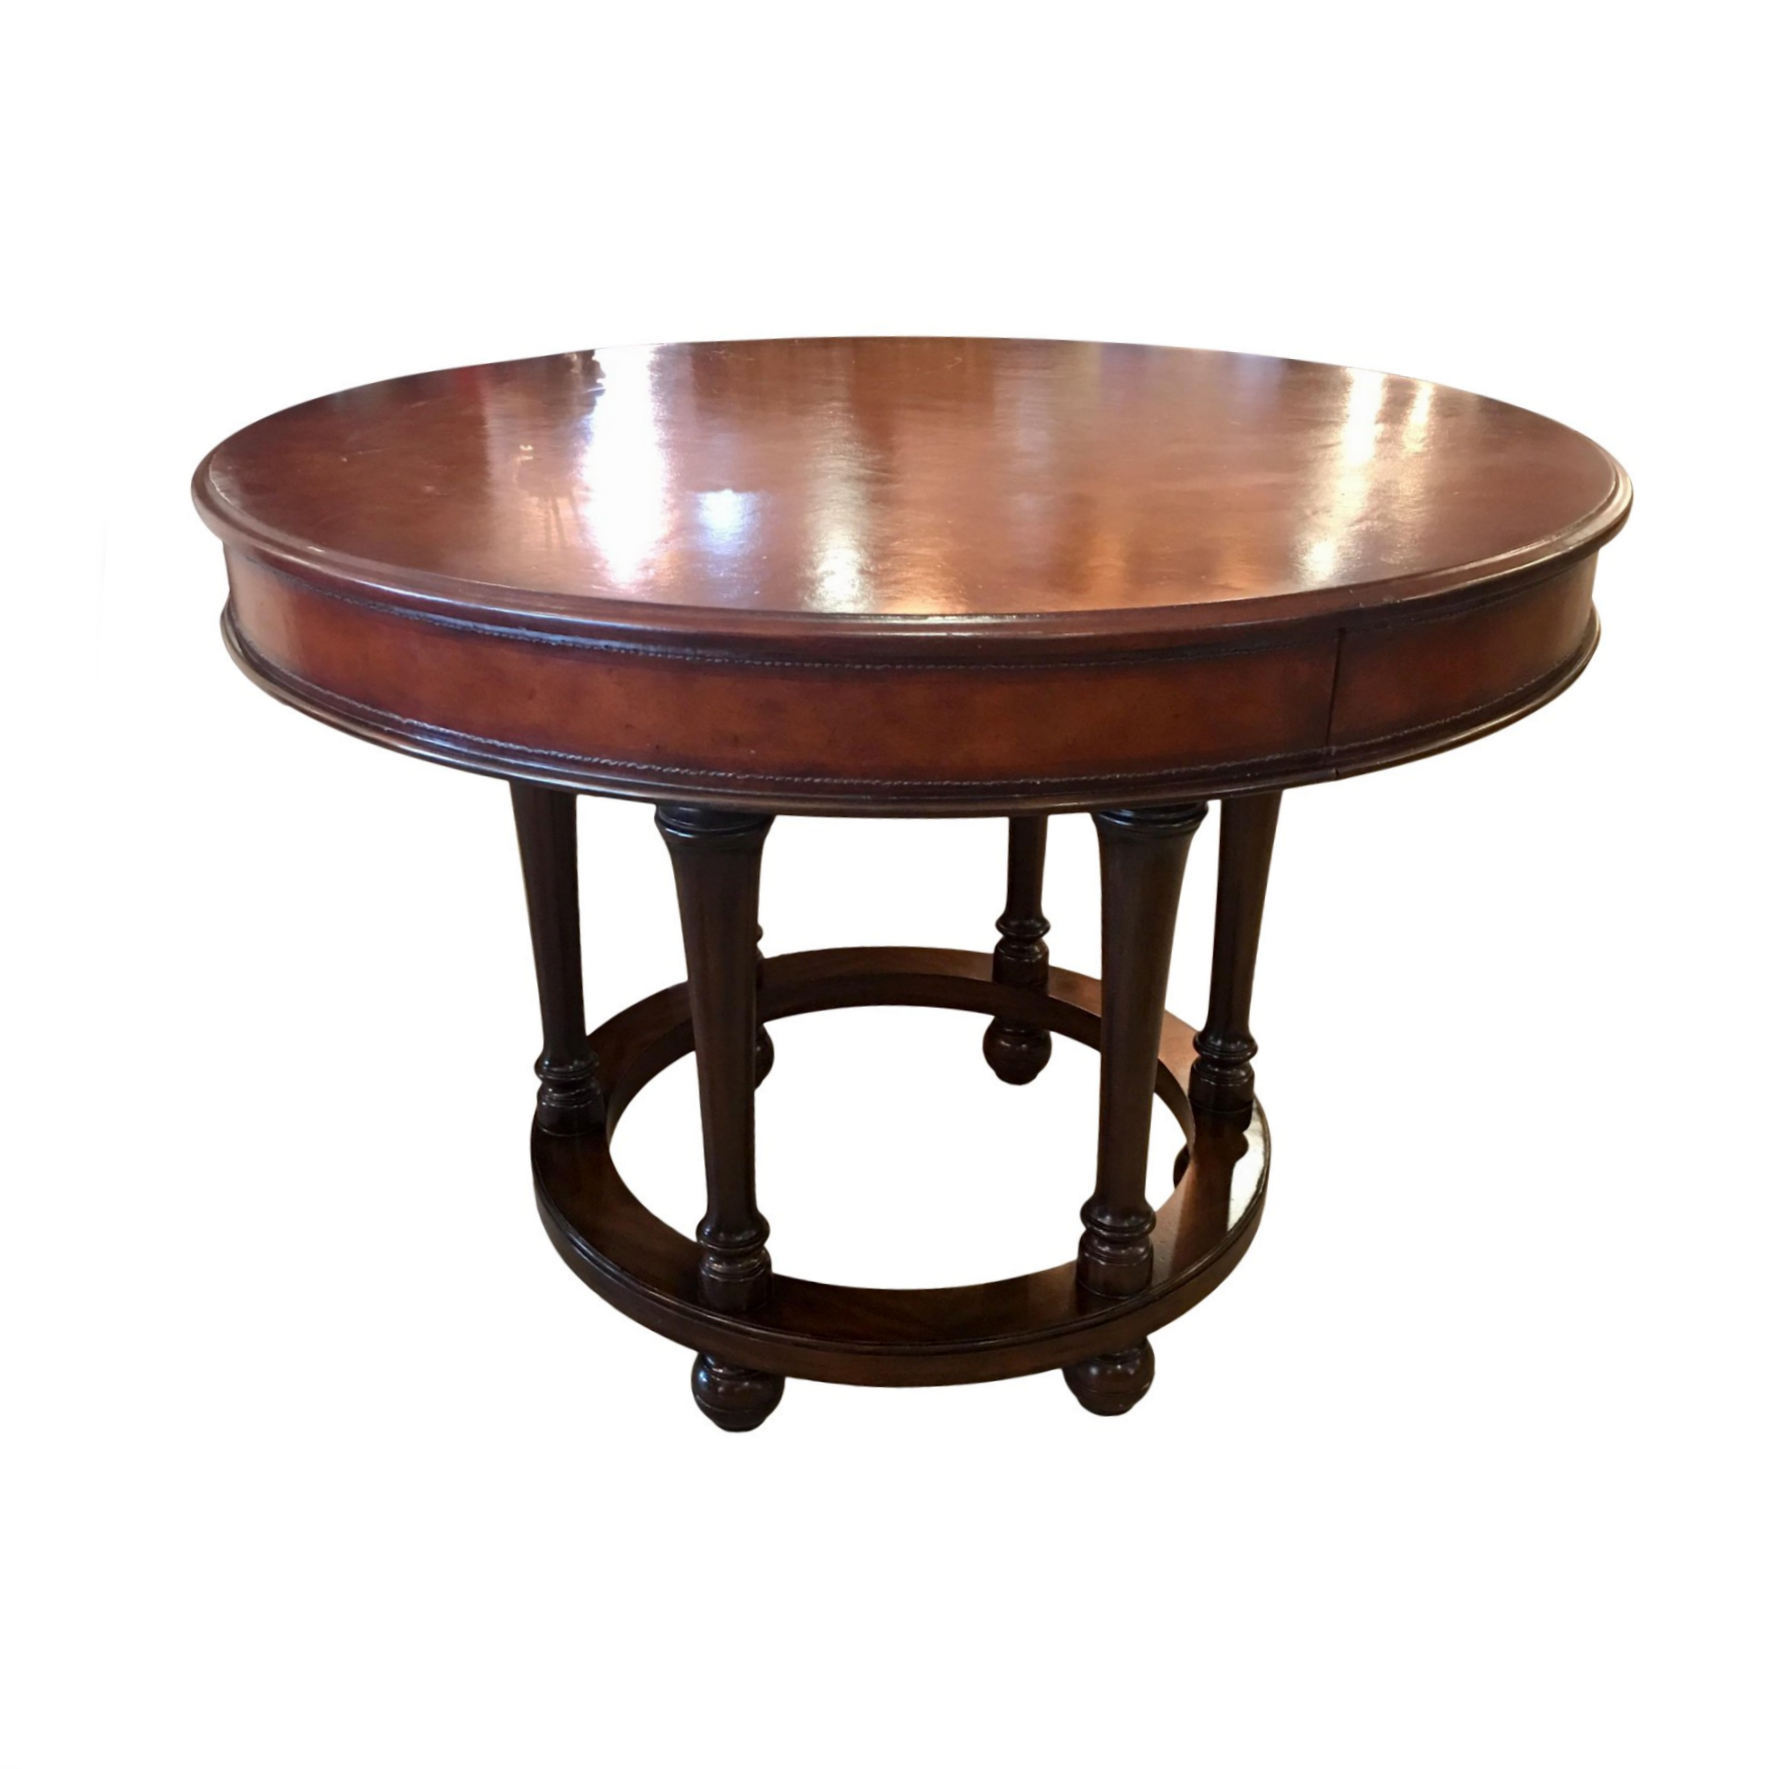 SOLD Ralph Lauren Leather Top Accent Table